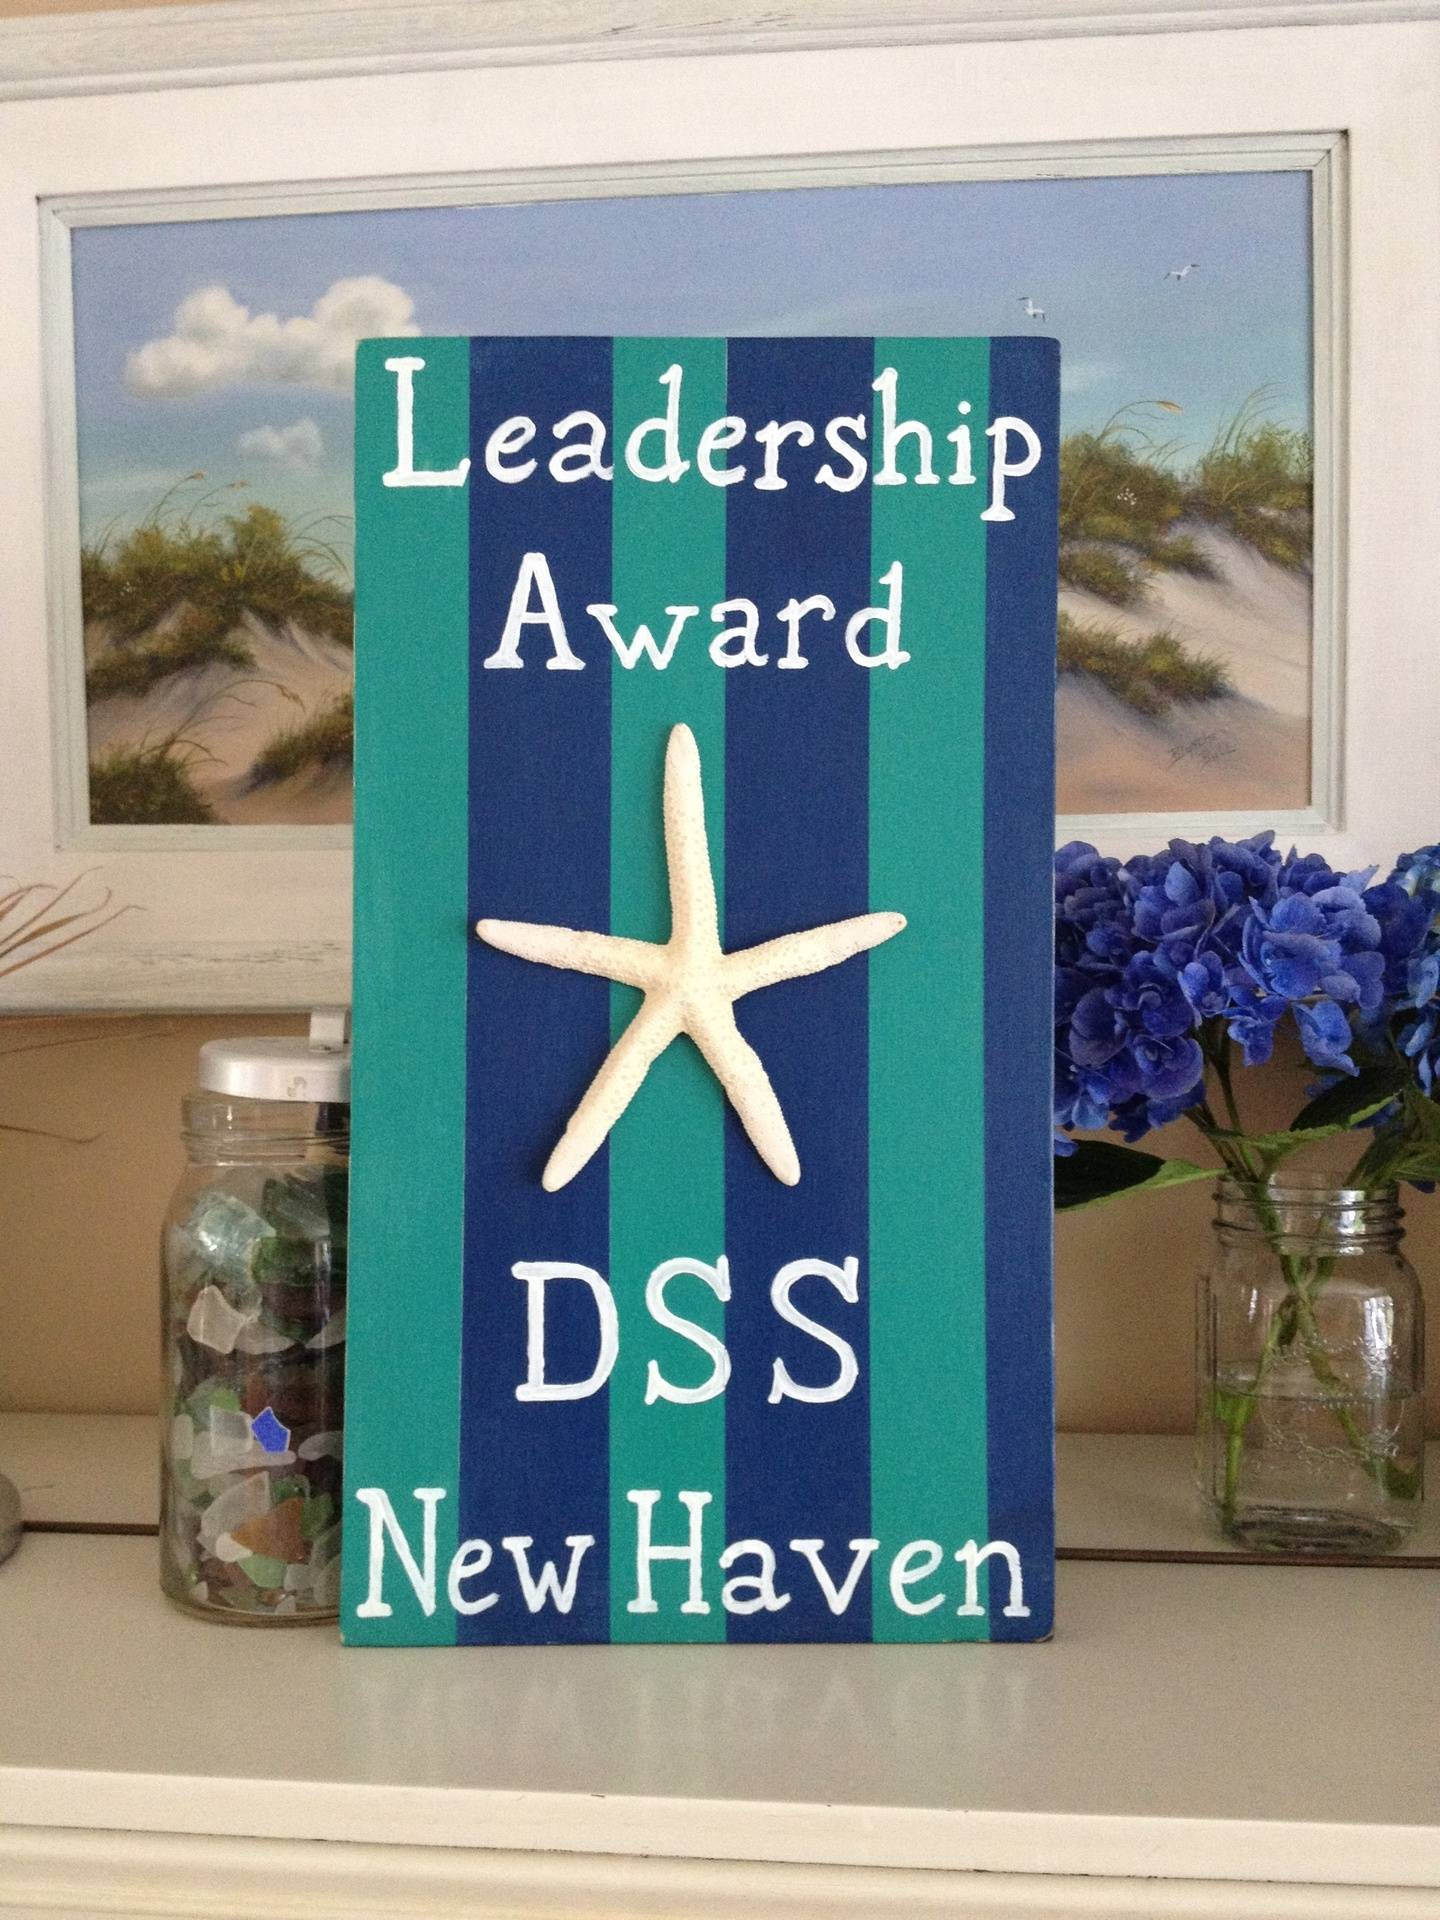 DSS New Haven